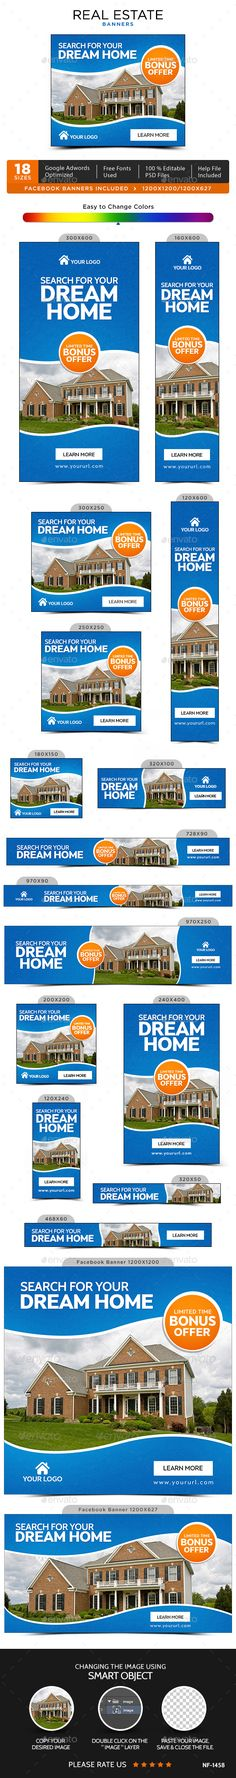 Real Estate Banners — Photoshop PSD #banners #metro design • Available here → https://graphicriver.net/item/real-estate-banners/17285862?ref=pxcr